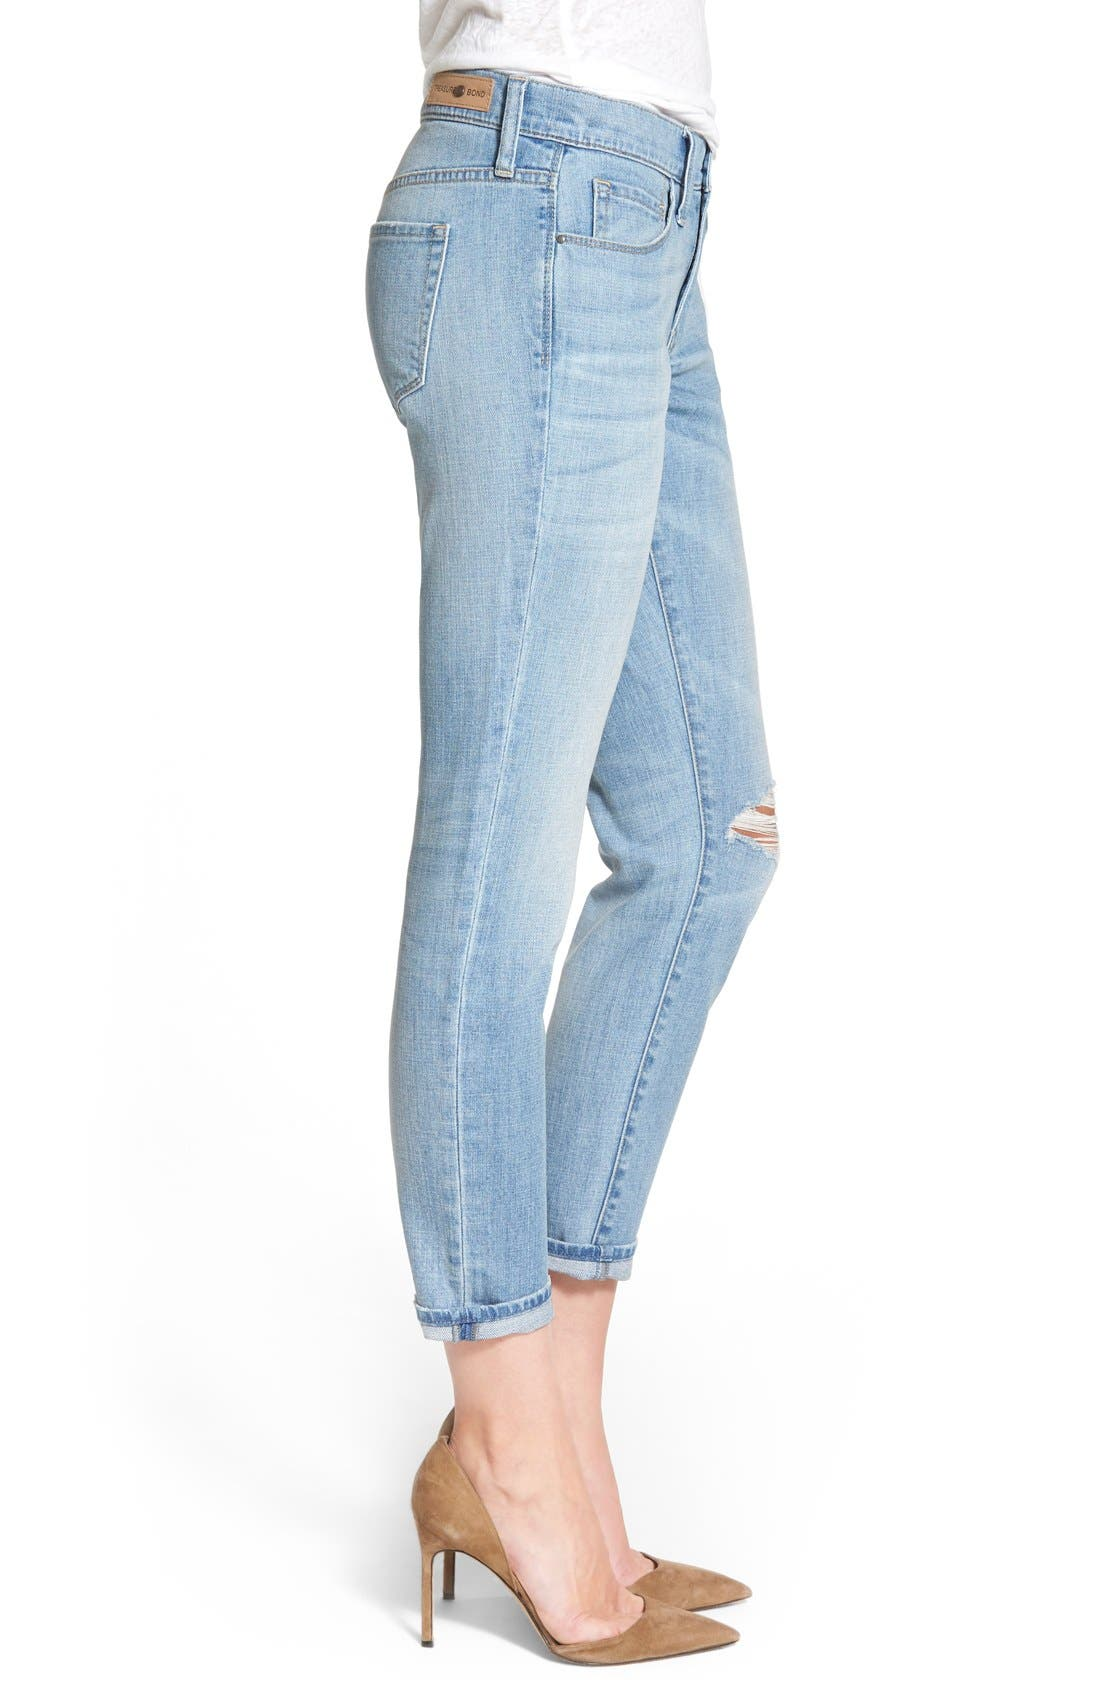 TREASURE & BOND, Treasure&Bond Ankle Boyfriend Skinny Jeans, Alternate thumbnail 4, color, 400